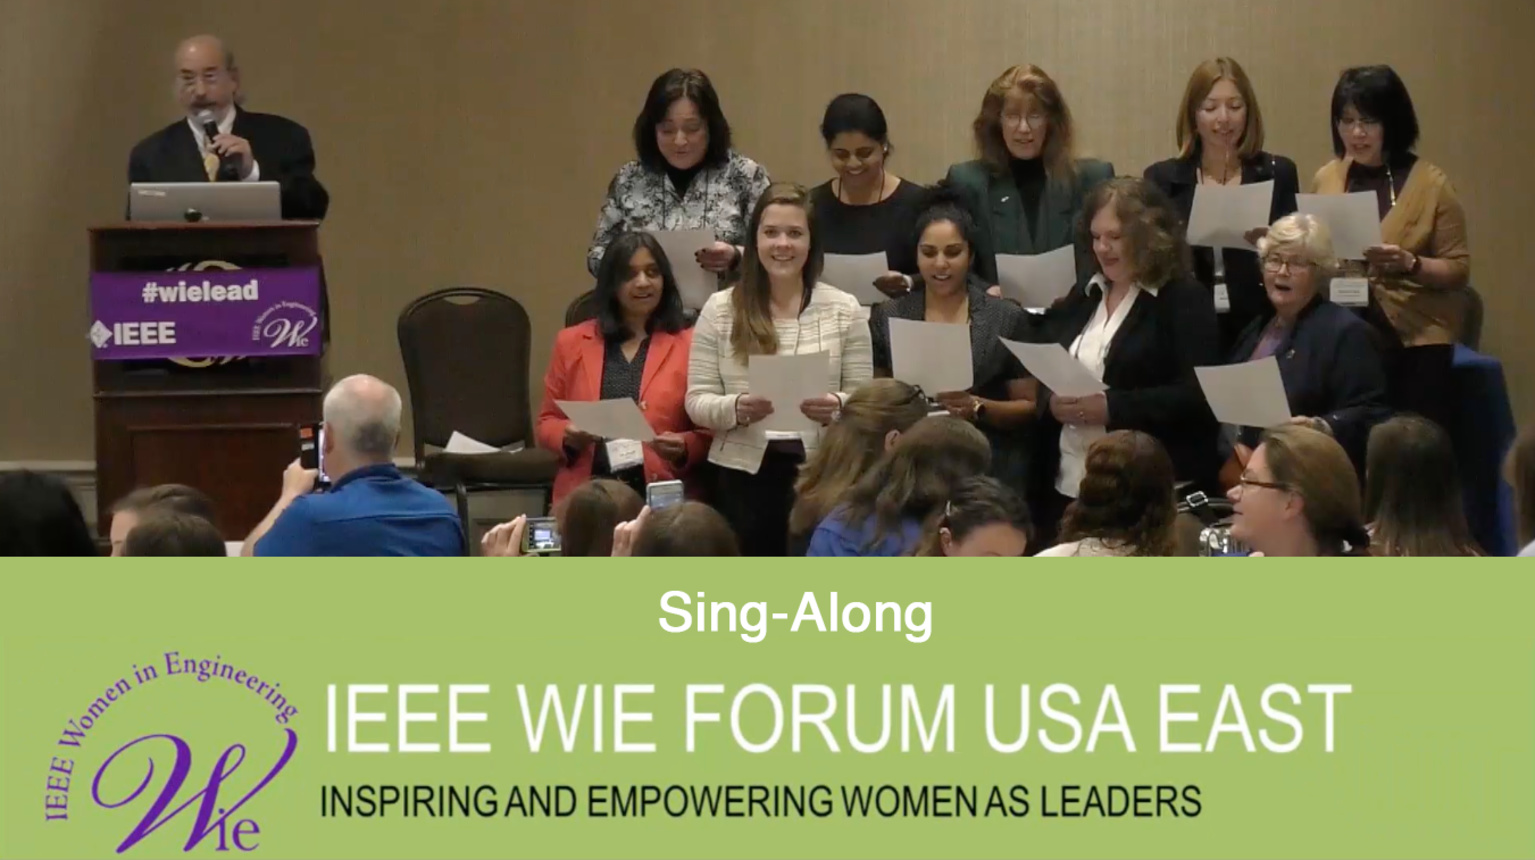 Sing-Along: IEEE WIE Forum USA East 2017